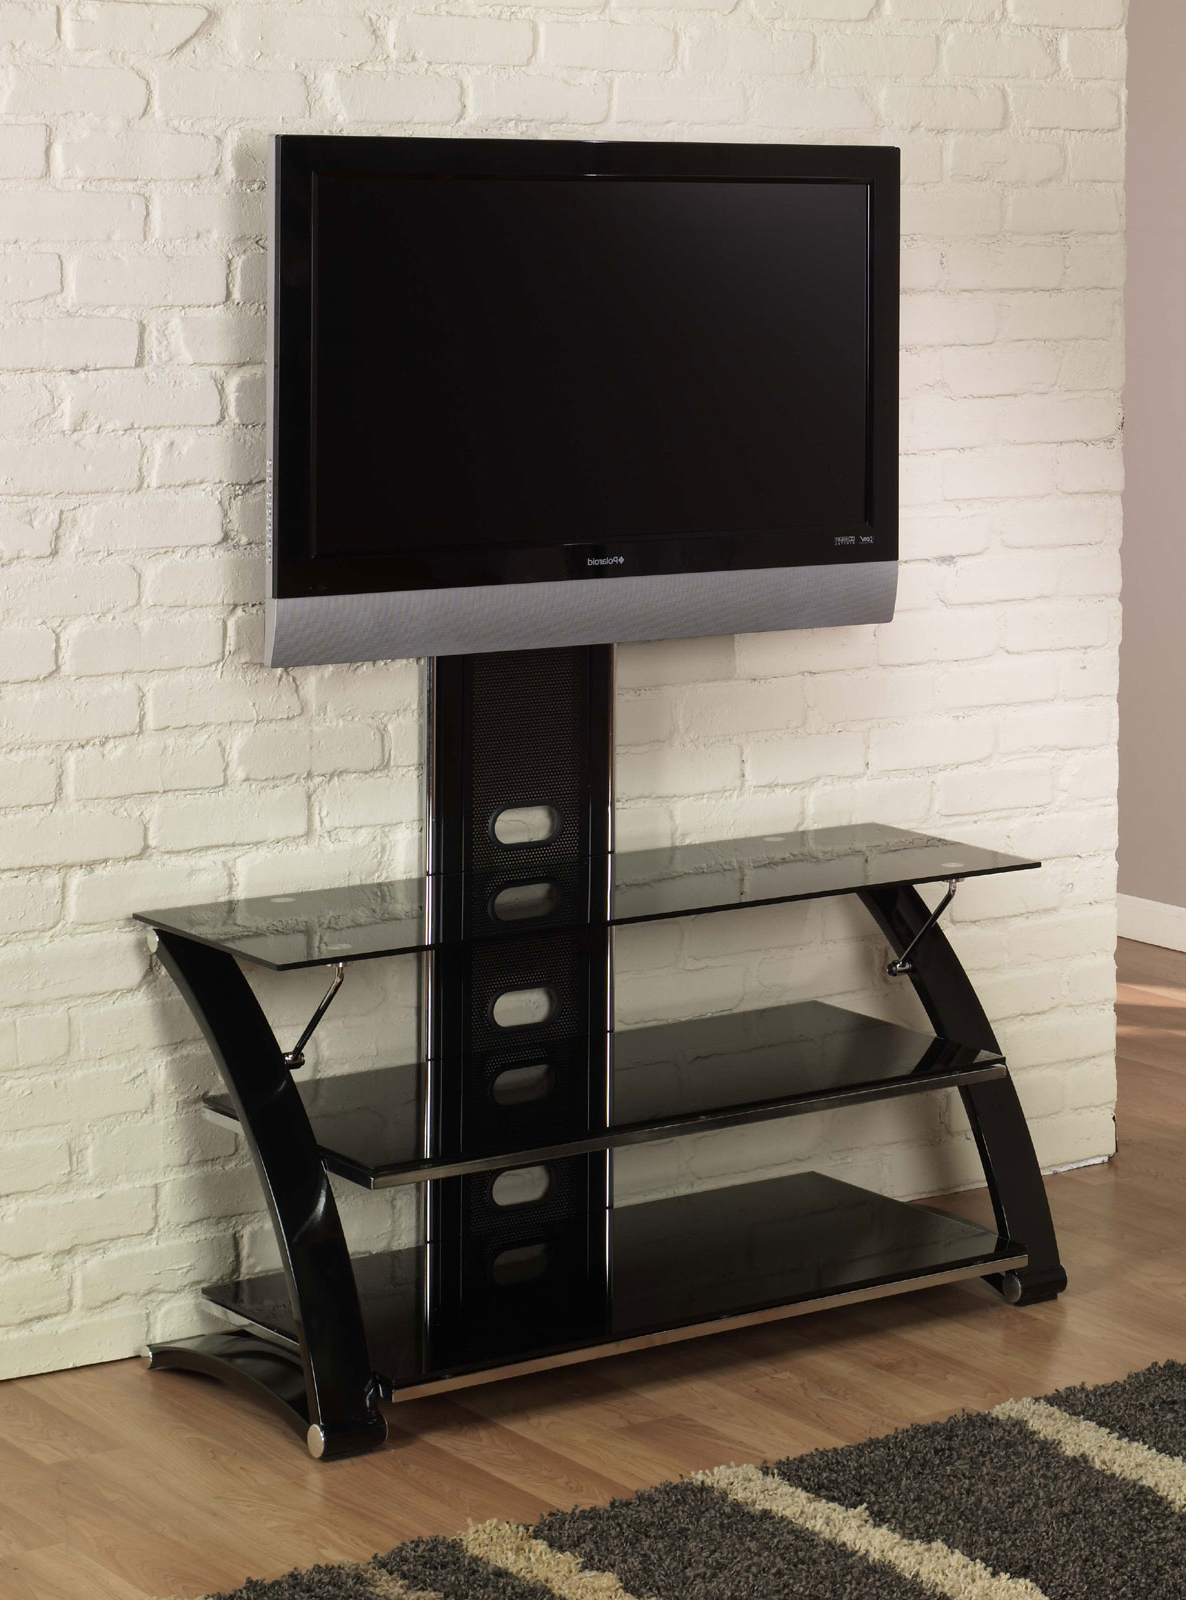 Black Glass Tv Stand 60 Inch Doors Price In Nigeria Sliding With And Regarding 2018 Black Tv Stand With Glass Doors (View 15 of 20)